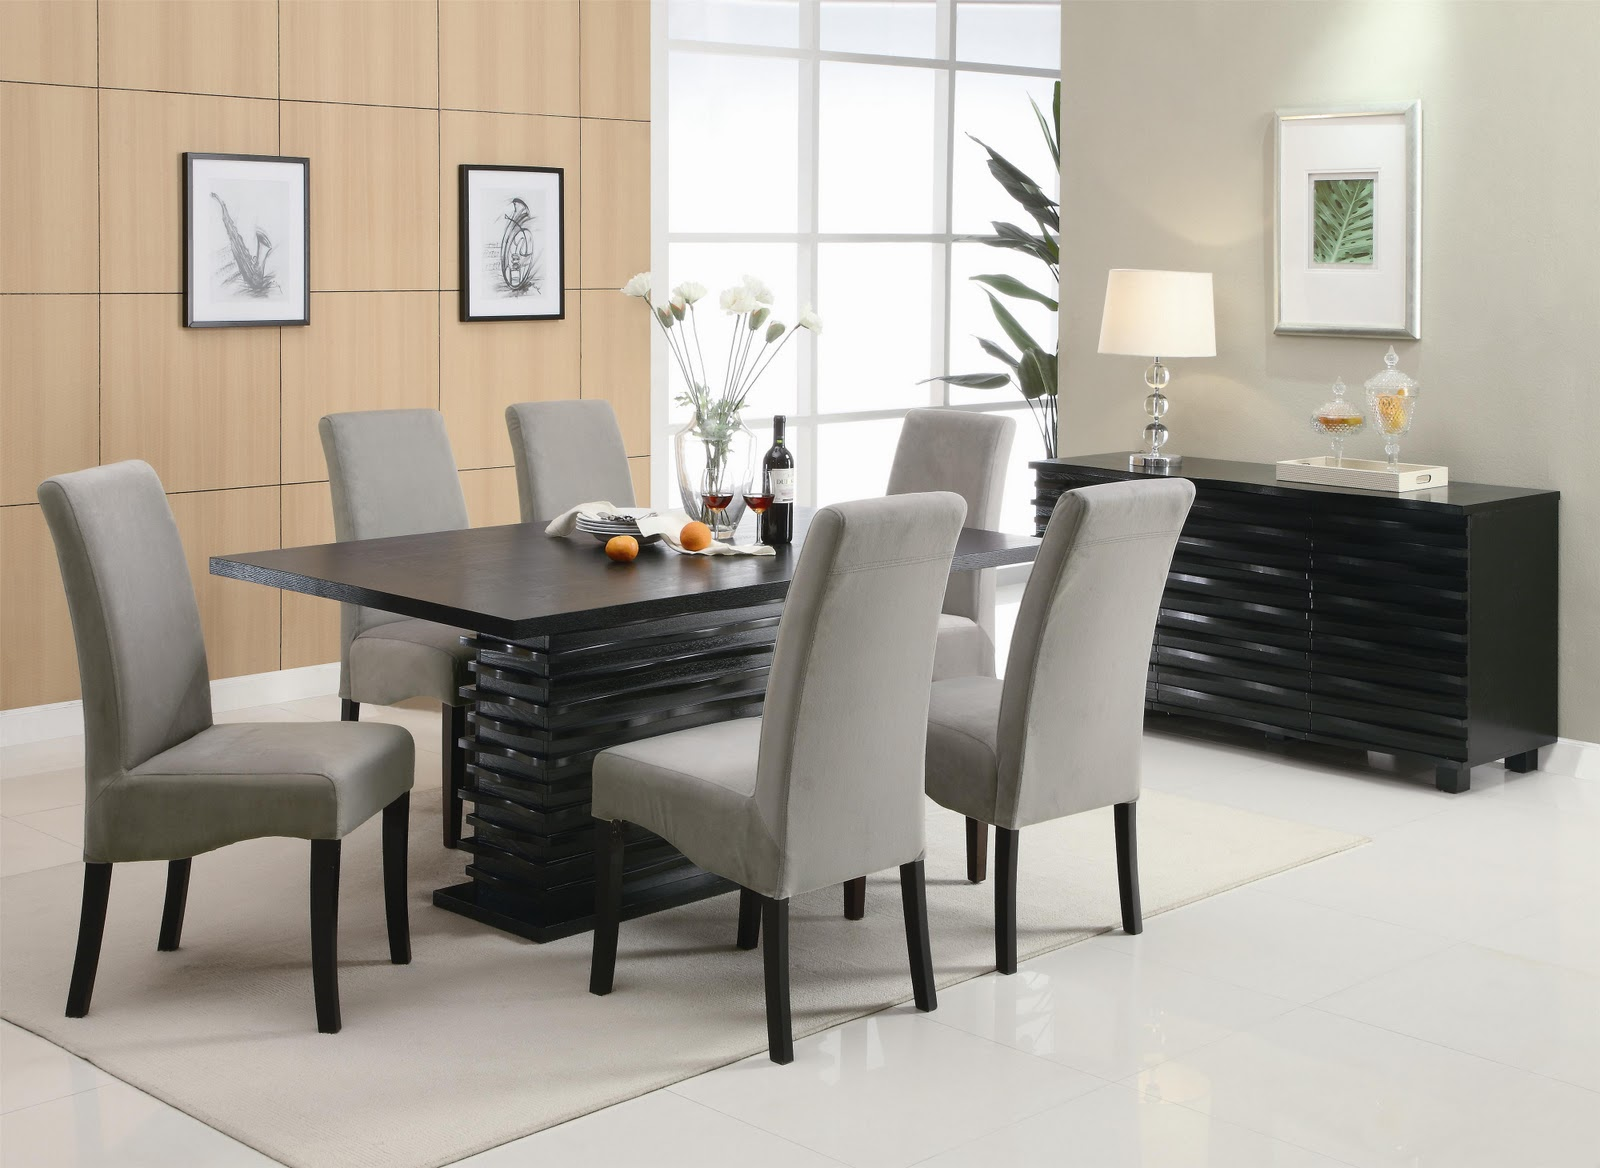 chairs for dining room table | Dining Room | Royal Furniture Outlet